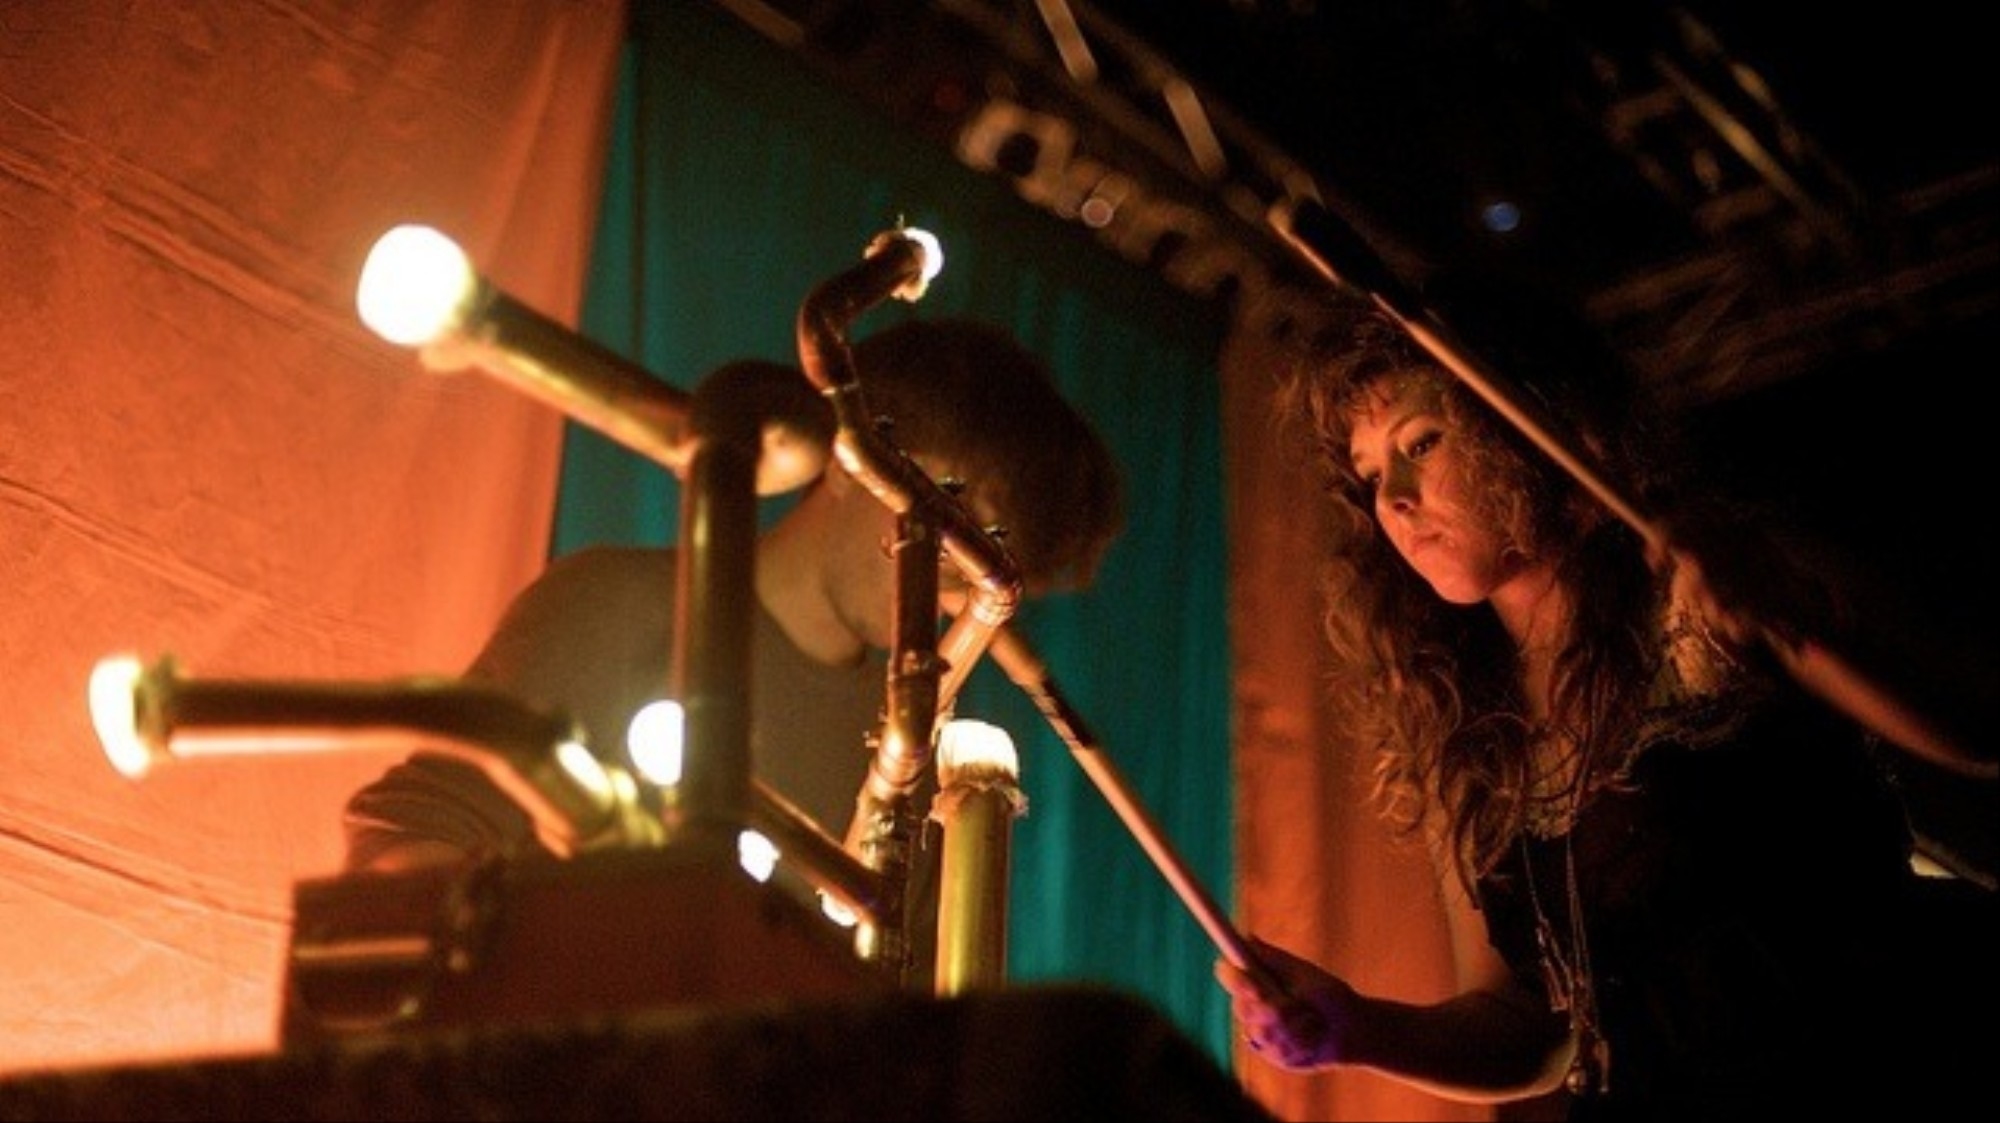 What's Inside Purity Ring's Interactive Light Cocoons? - VICE